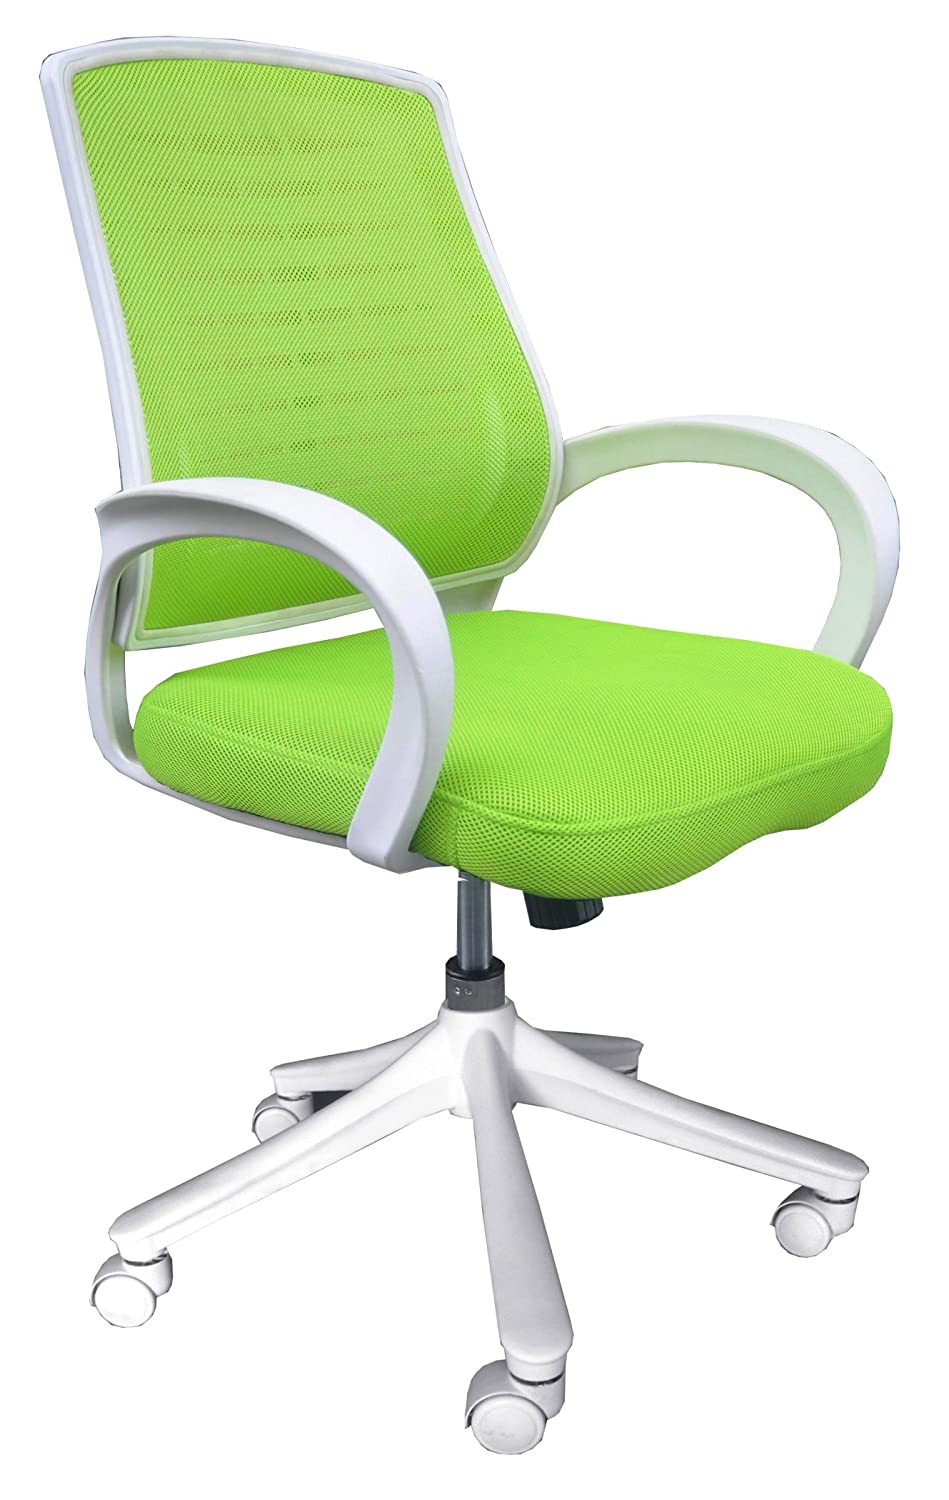 Comfort Products Iona Mesh Chair Mesh, Apple Green 60-51840006